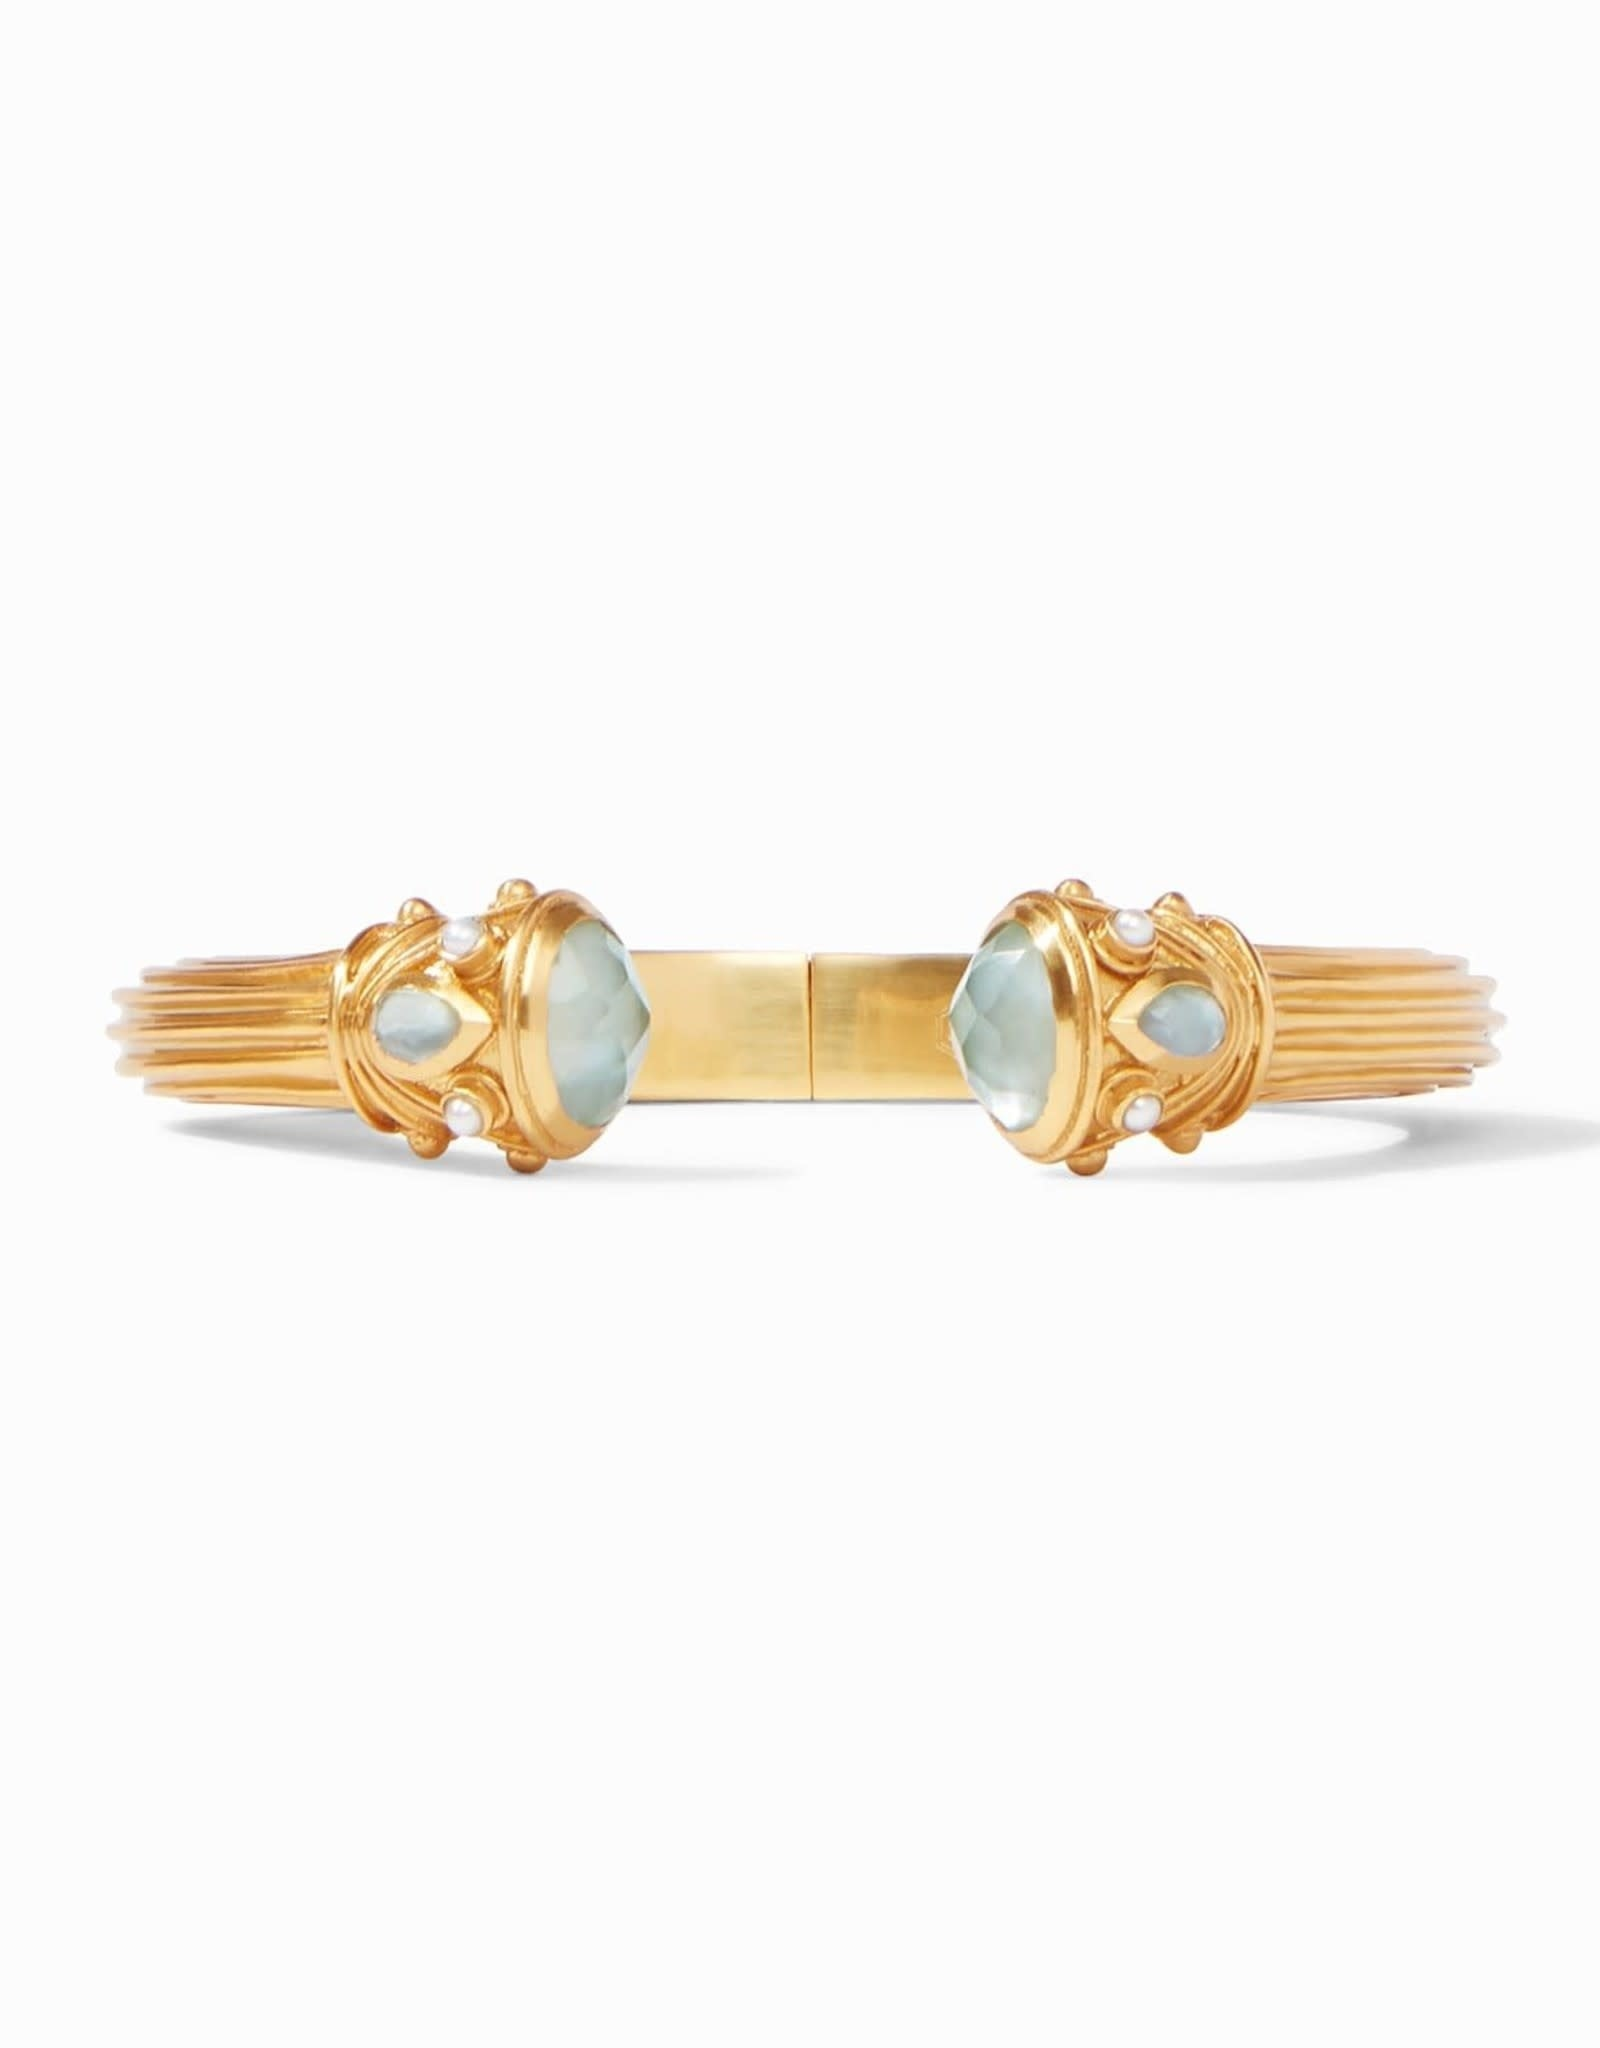 Julie Vos Byzantine Hinge Cuff Gold Iridescent Aquamarine Blue Endcaps with Pearl Accents